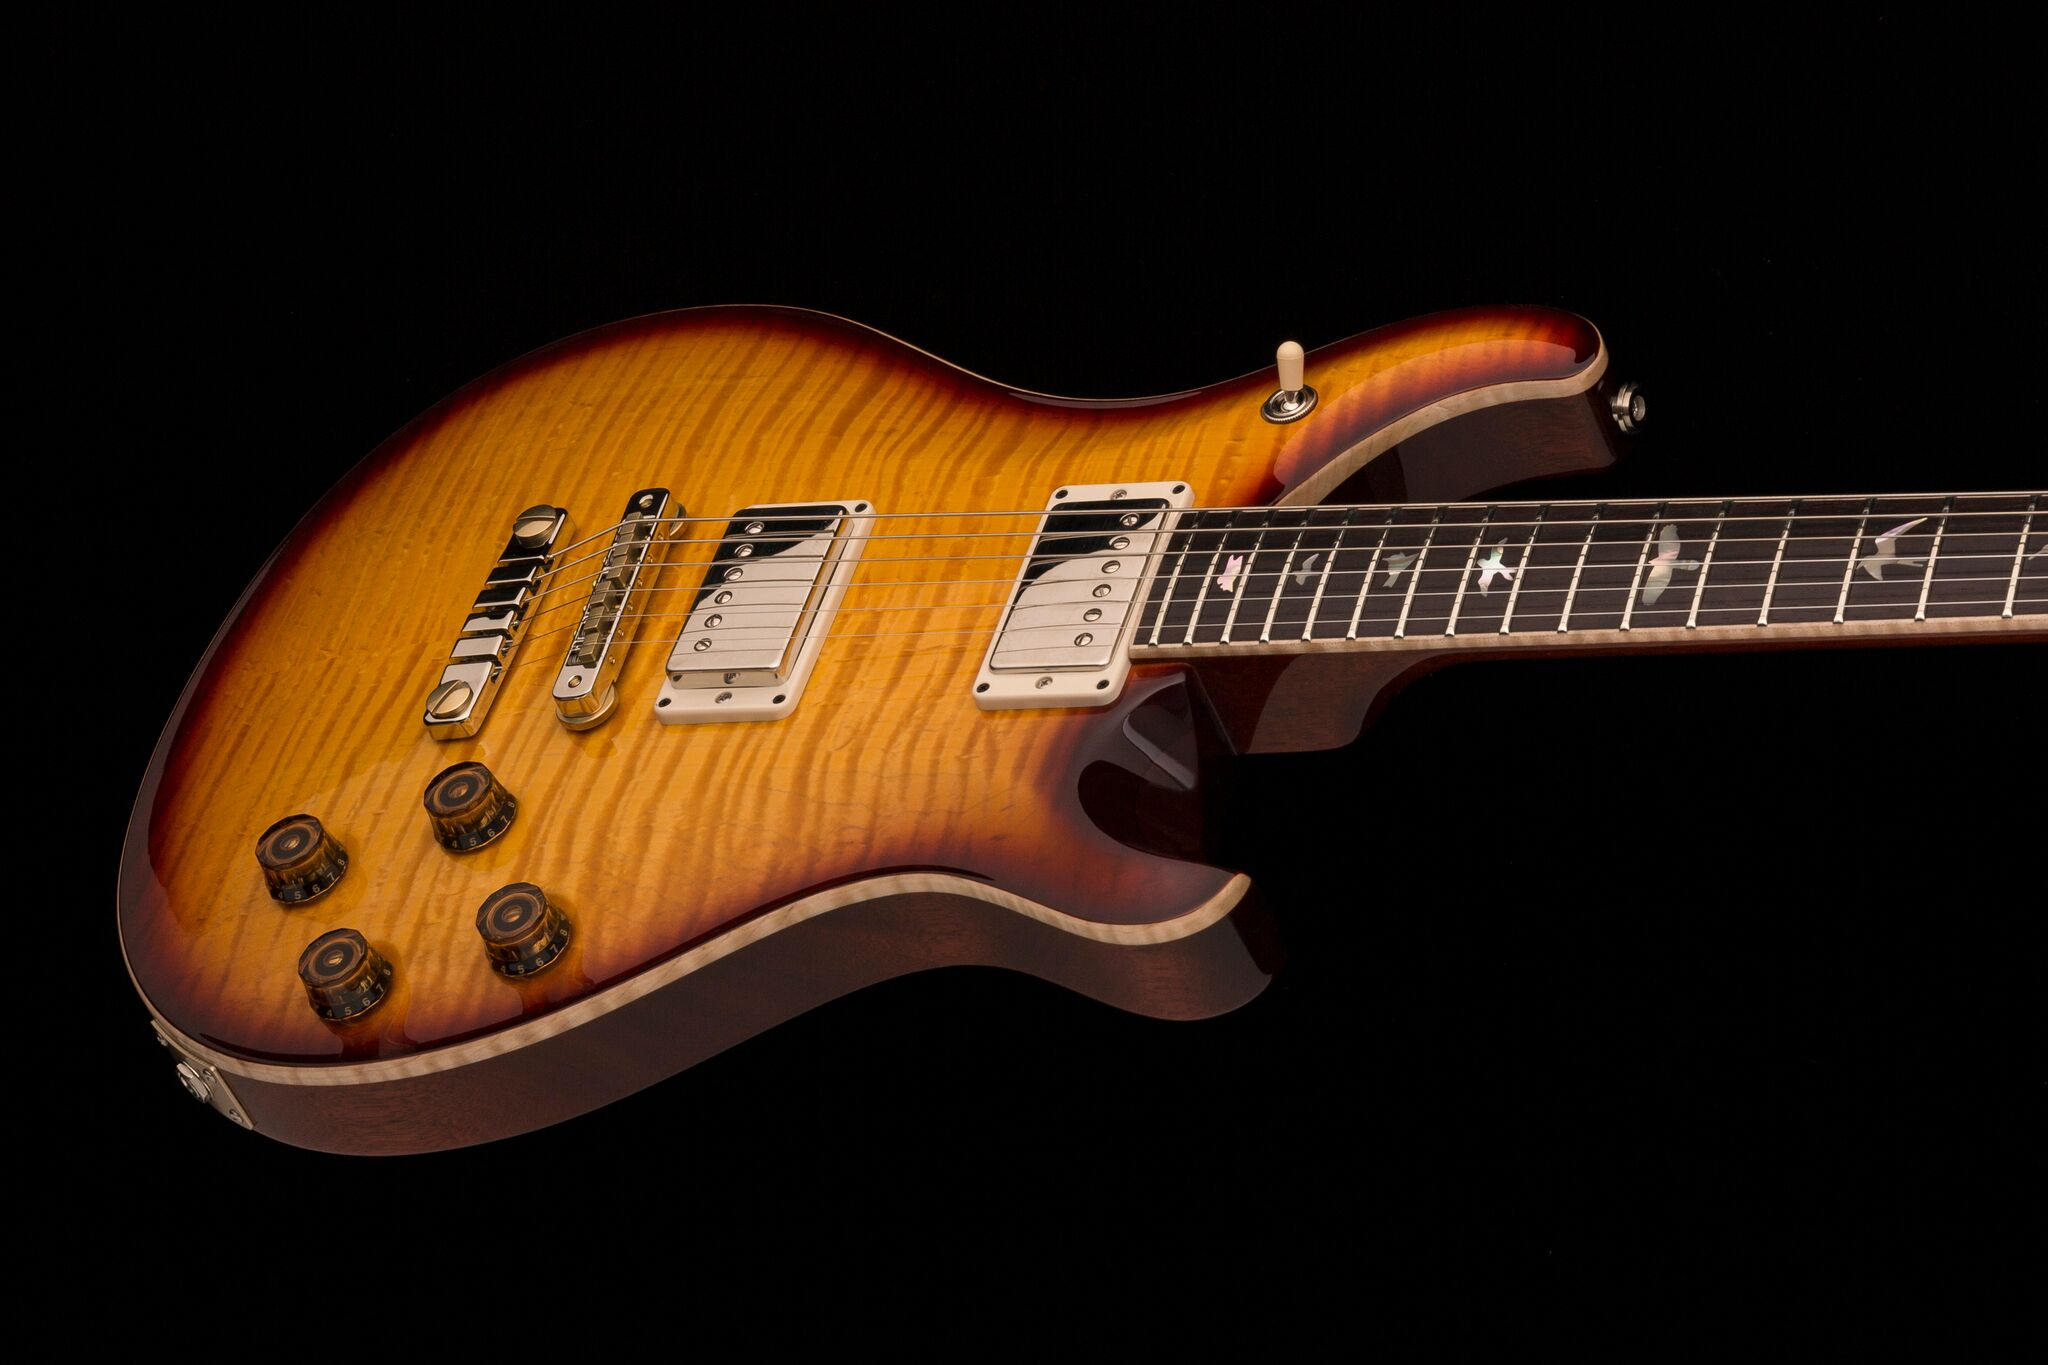 Prs Private Stock Graveyard Limited Guitar Released For Experience 2018 Girl Magazine